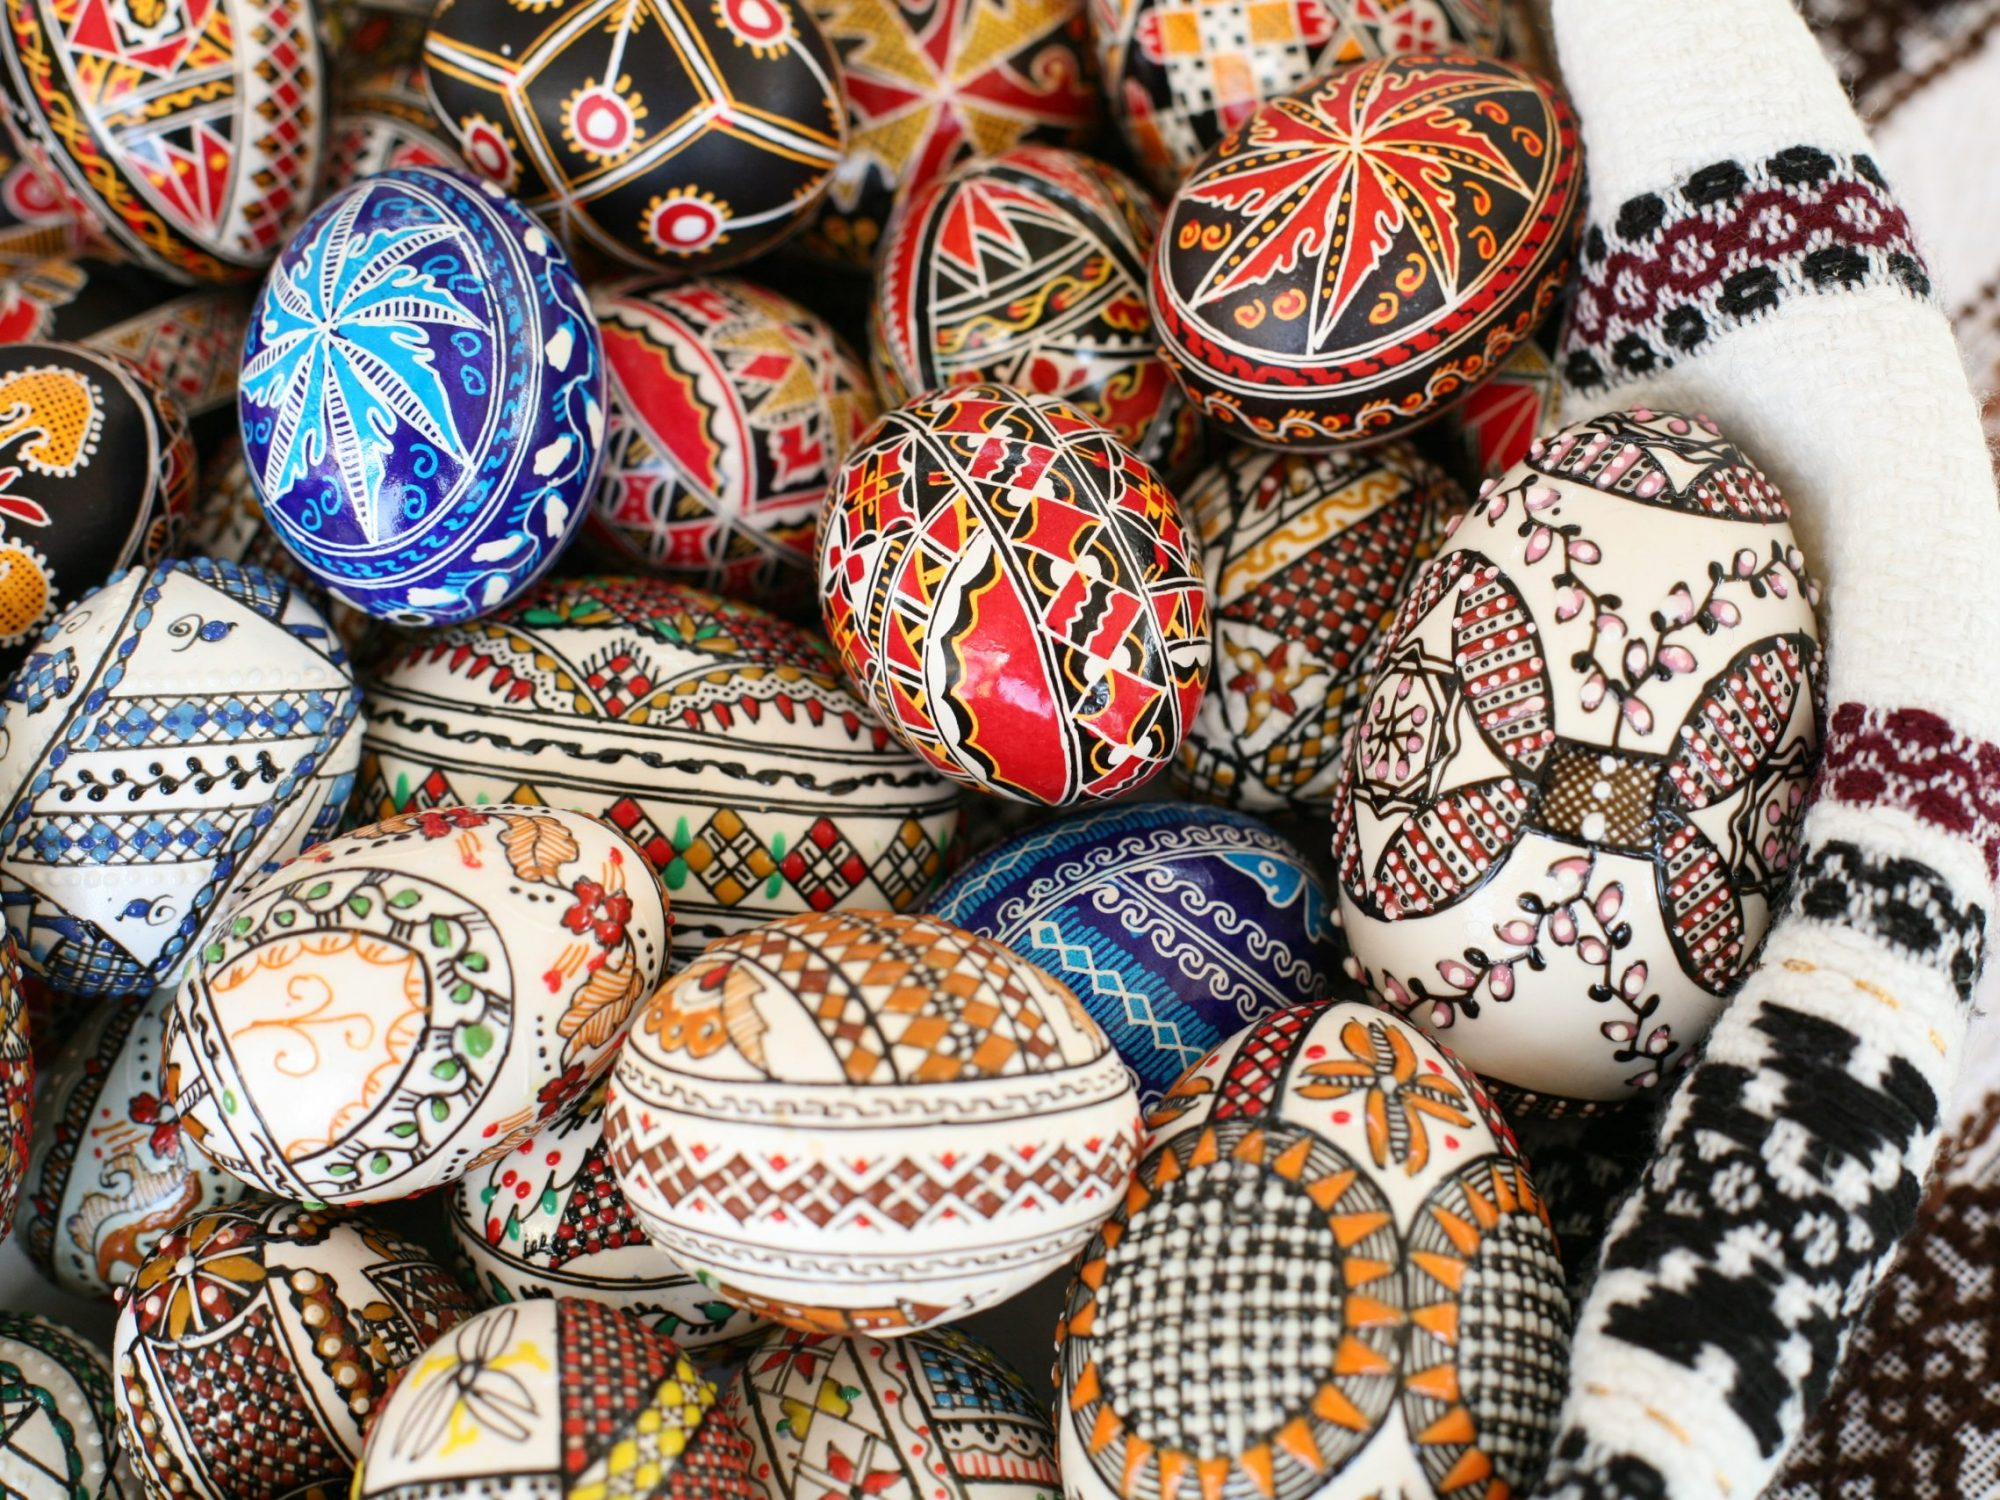 A basket of eggs which are highly decorated in different colours and with different patterns. They are all on a piece of fabric which is also patterned in a similar style